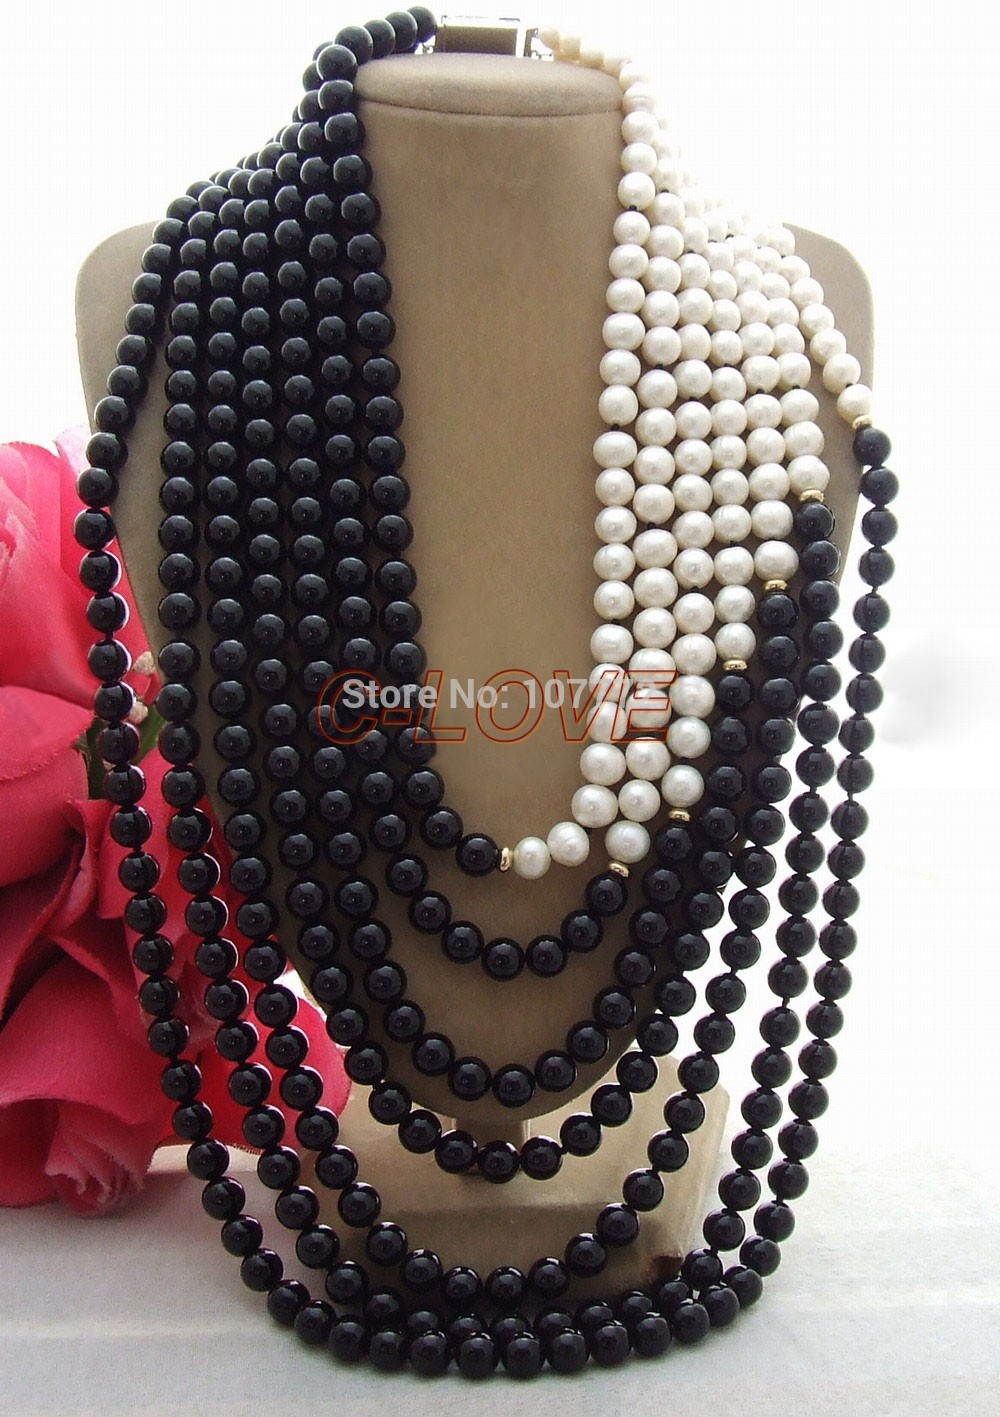 Hand Made Semi Stone Charming! 7 strands Pearl&Onyx Necklace free shipment